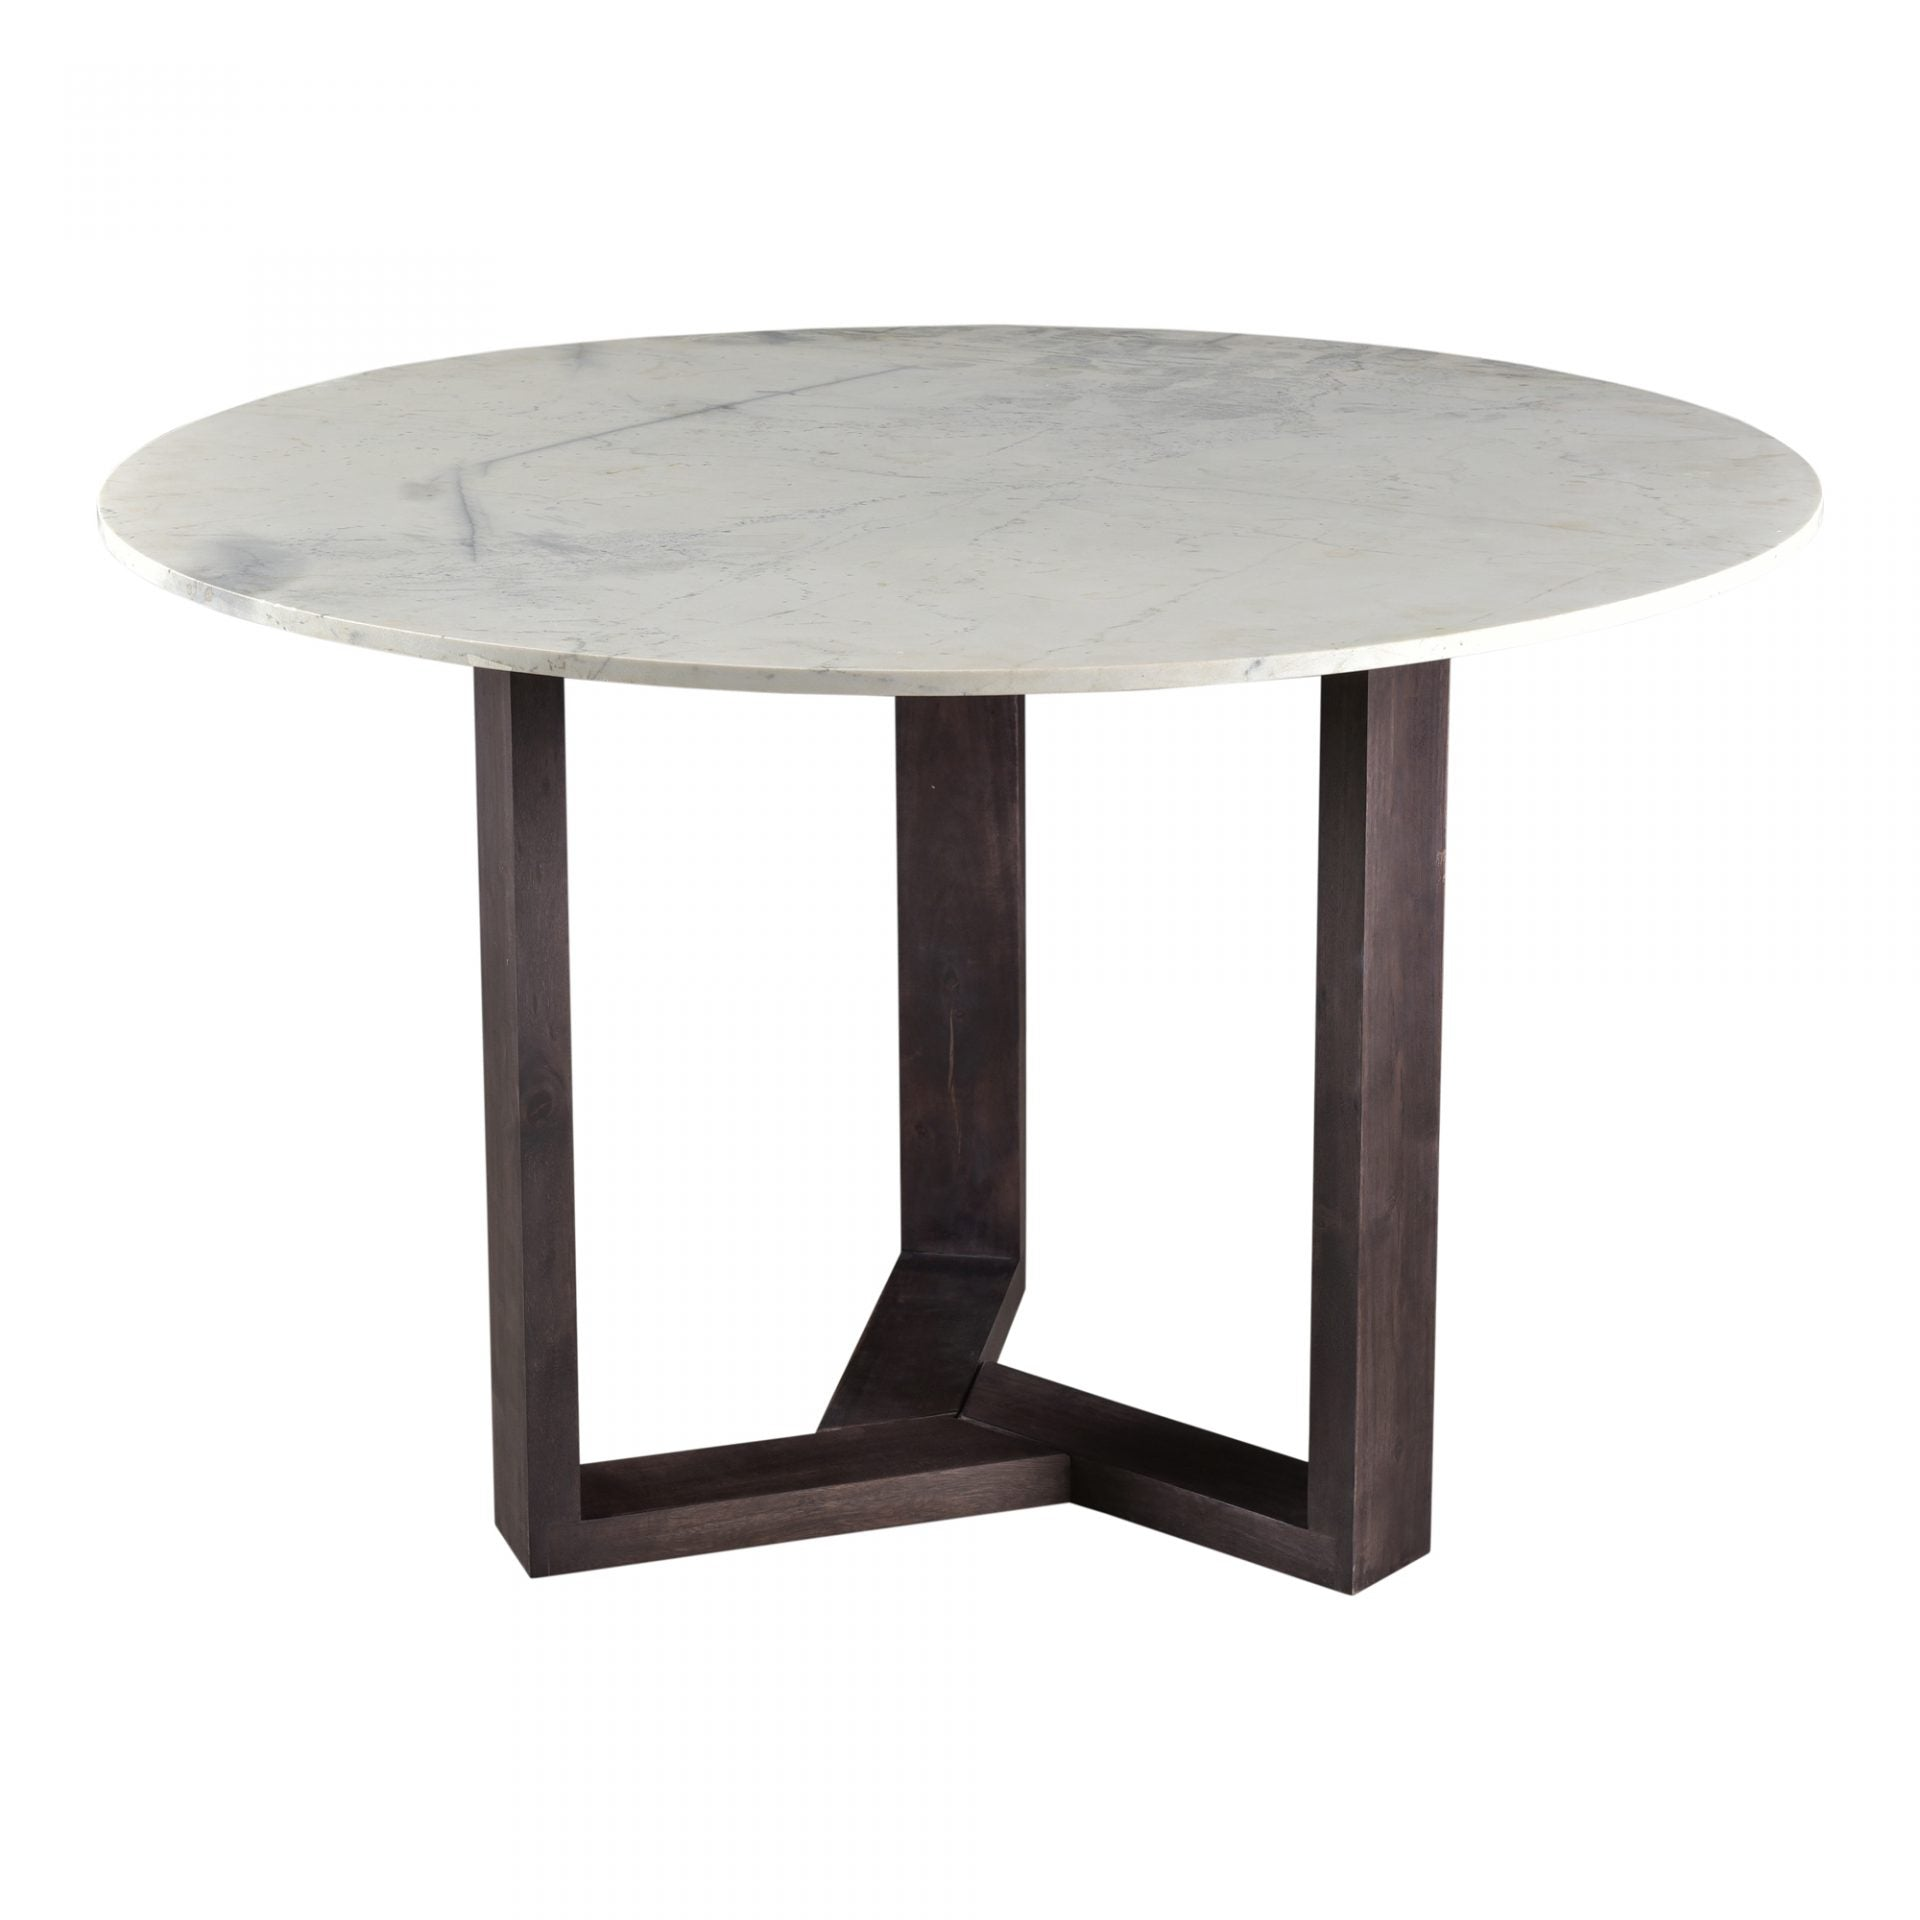 Jinxx Dining Table - Charcoal Grey